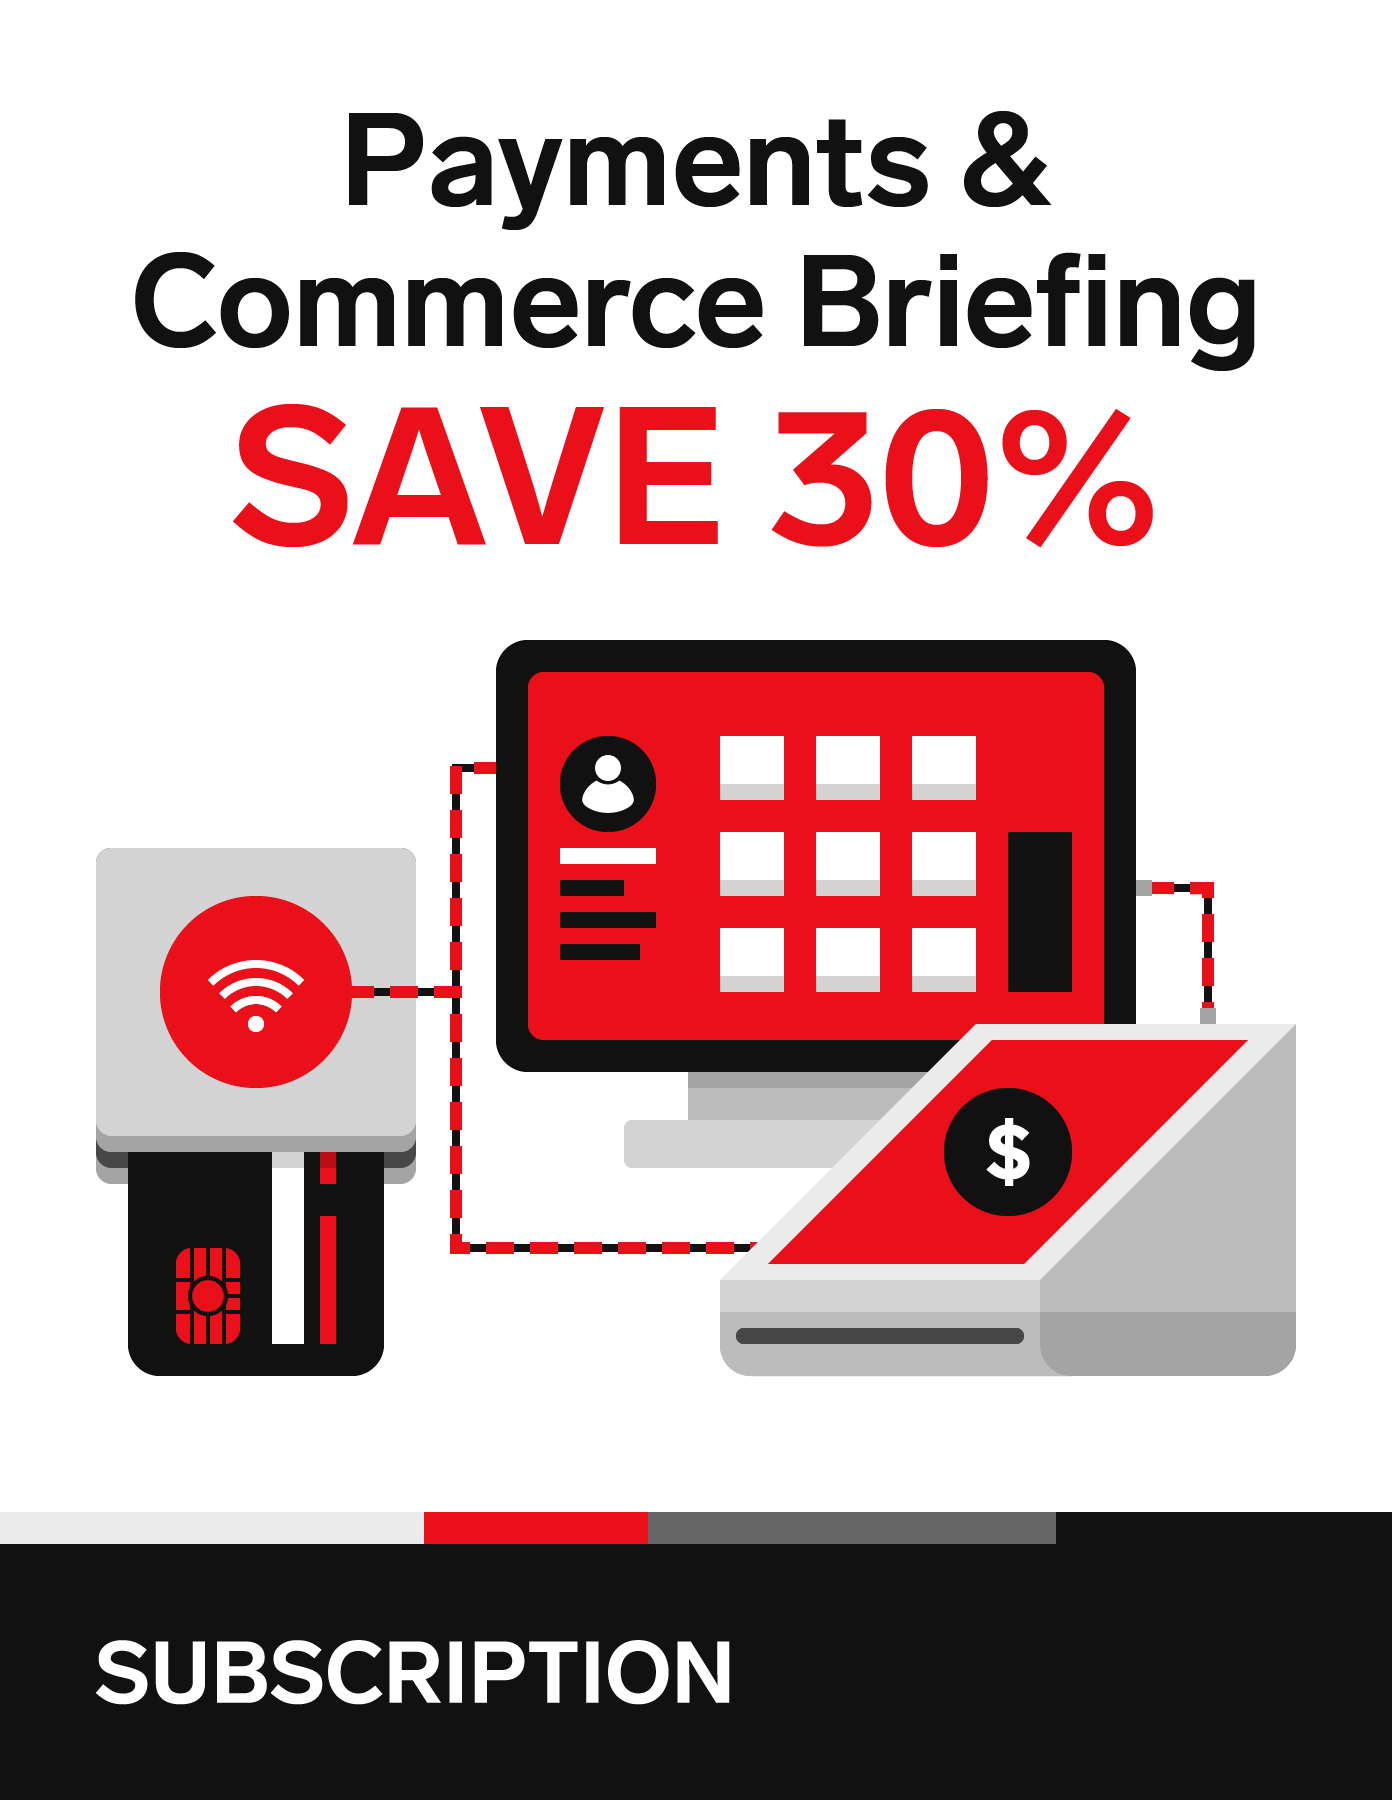 Payments & Commerce Briefing